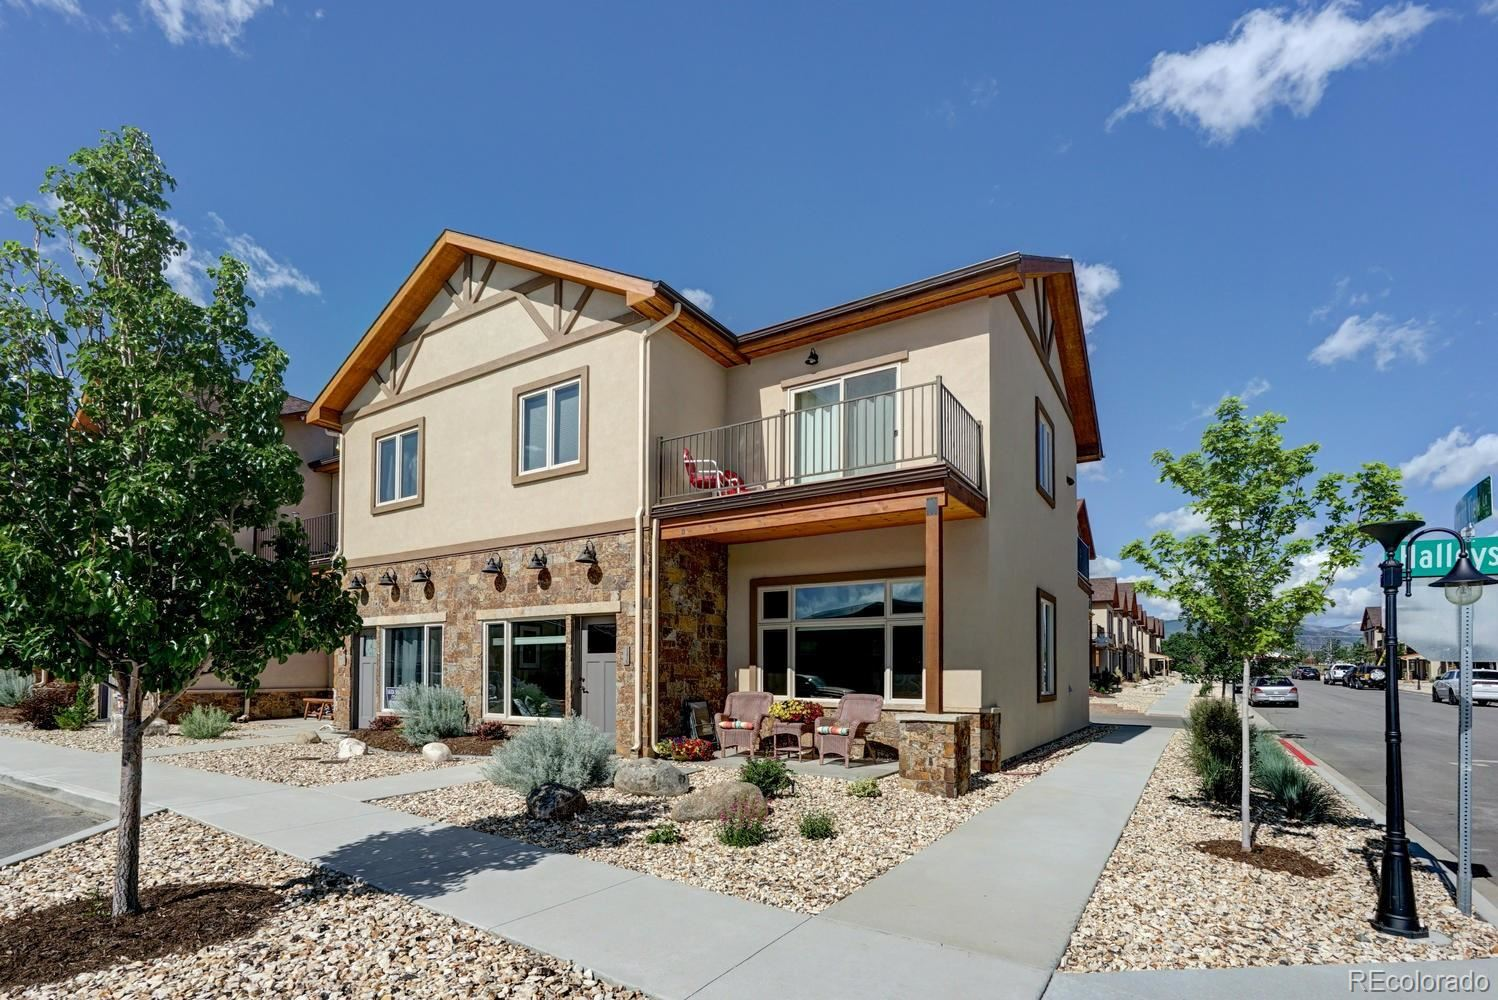 121 Halley\'s Avenue #D, Poncha Springs, CO 81242 - #: 9207114